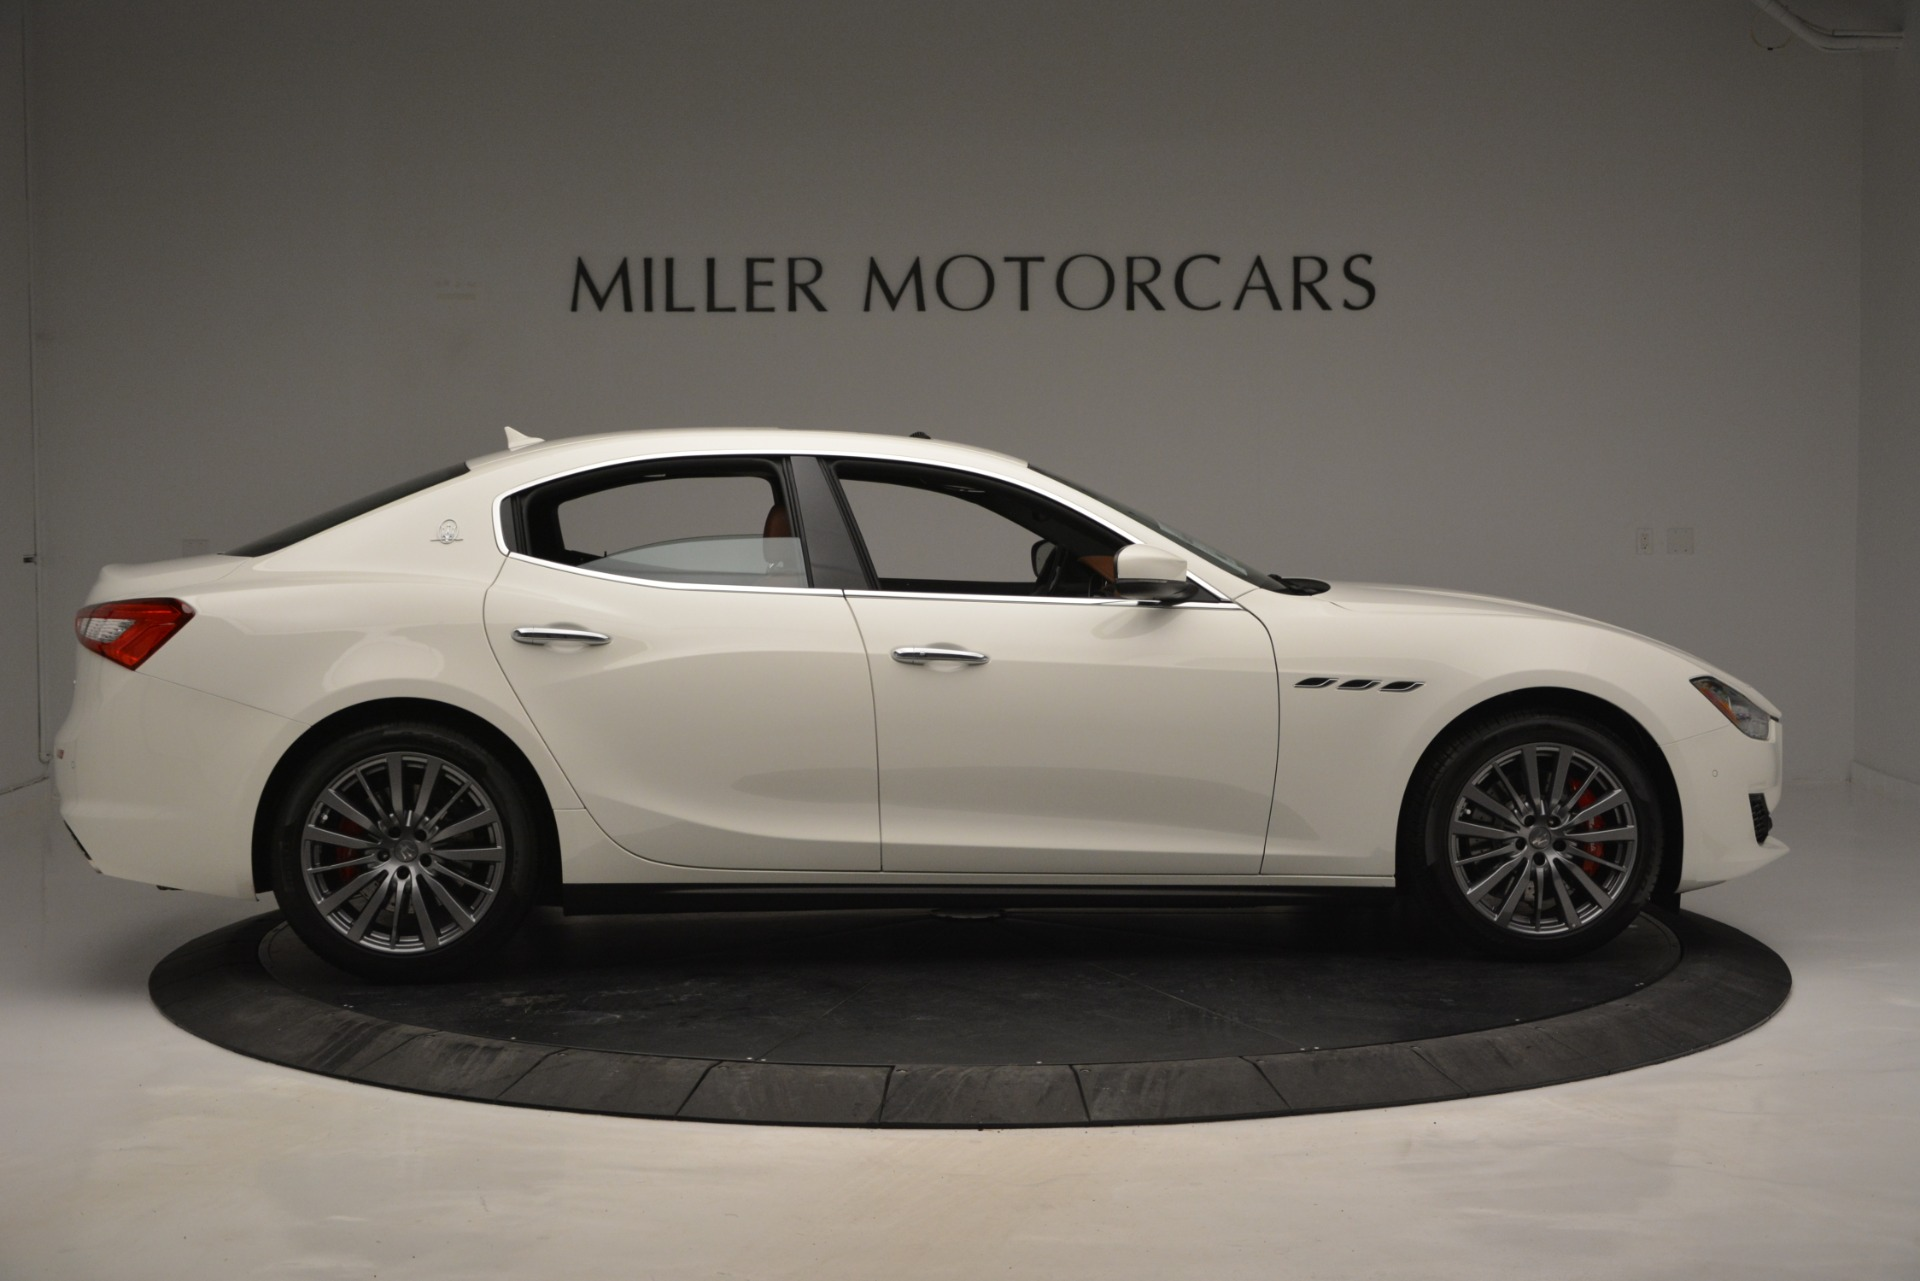 New 2019 Maserati Ghibli S Q4 For Sale In Greenwich, CT 2795_p12